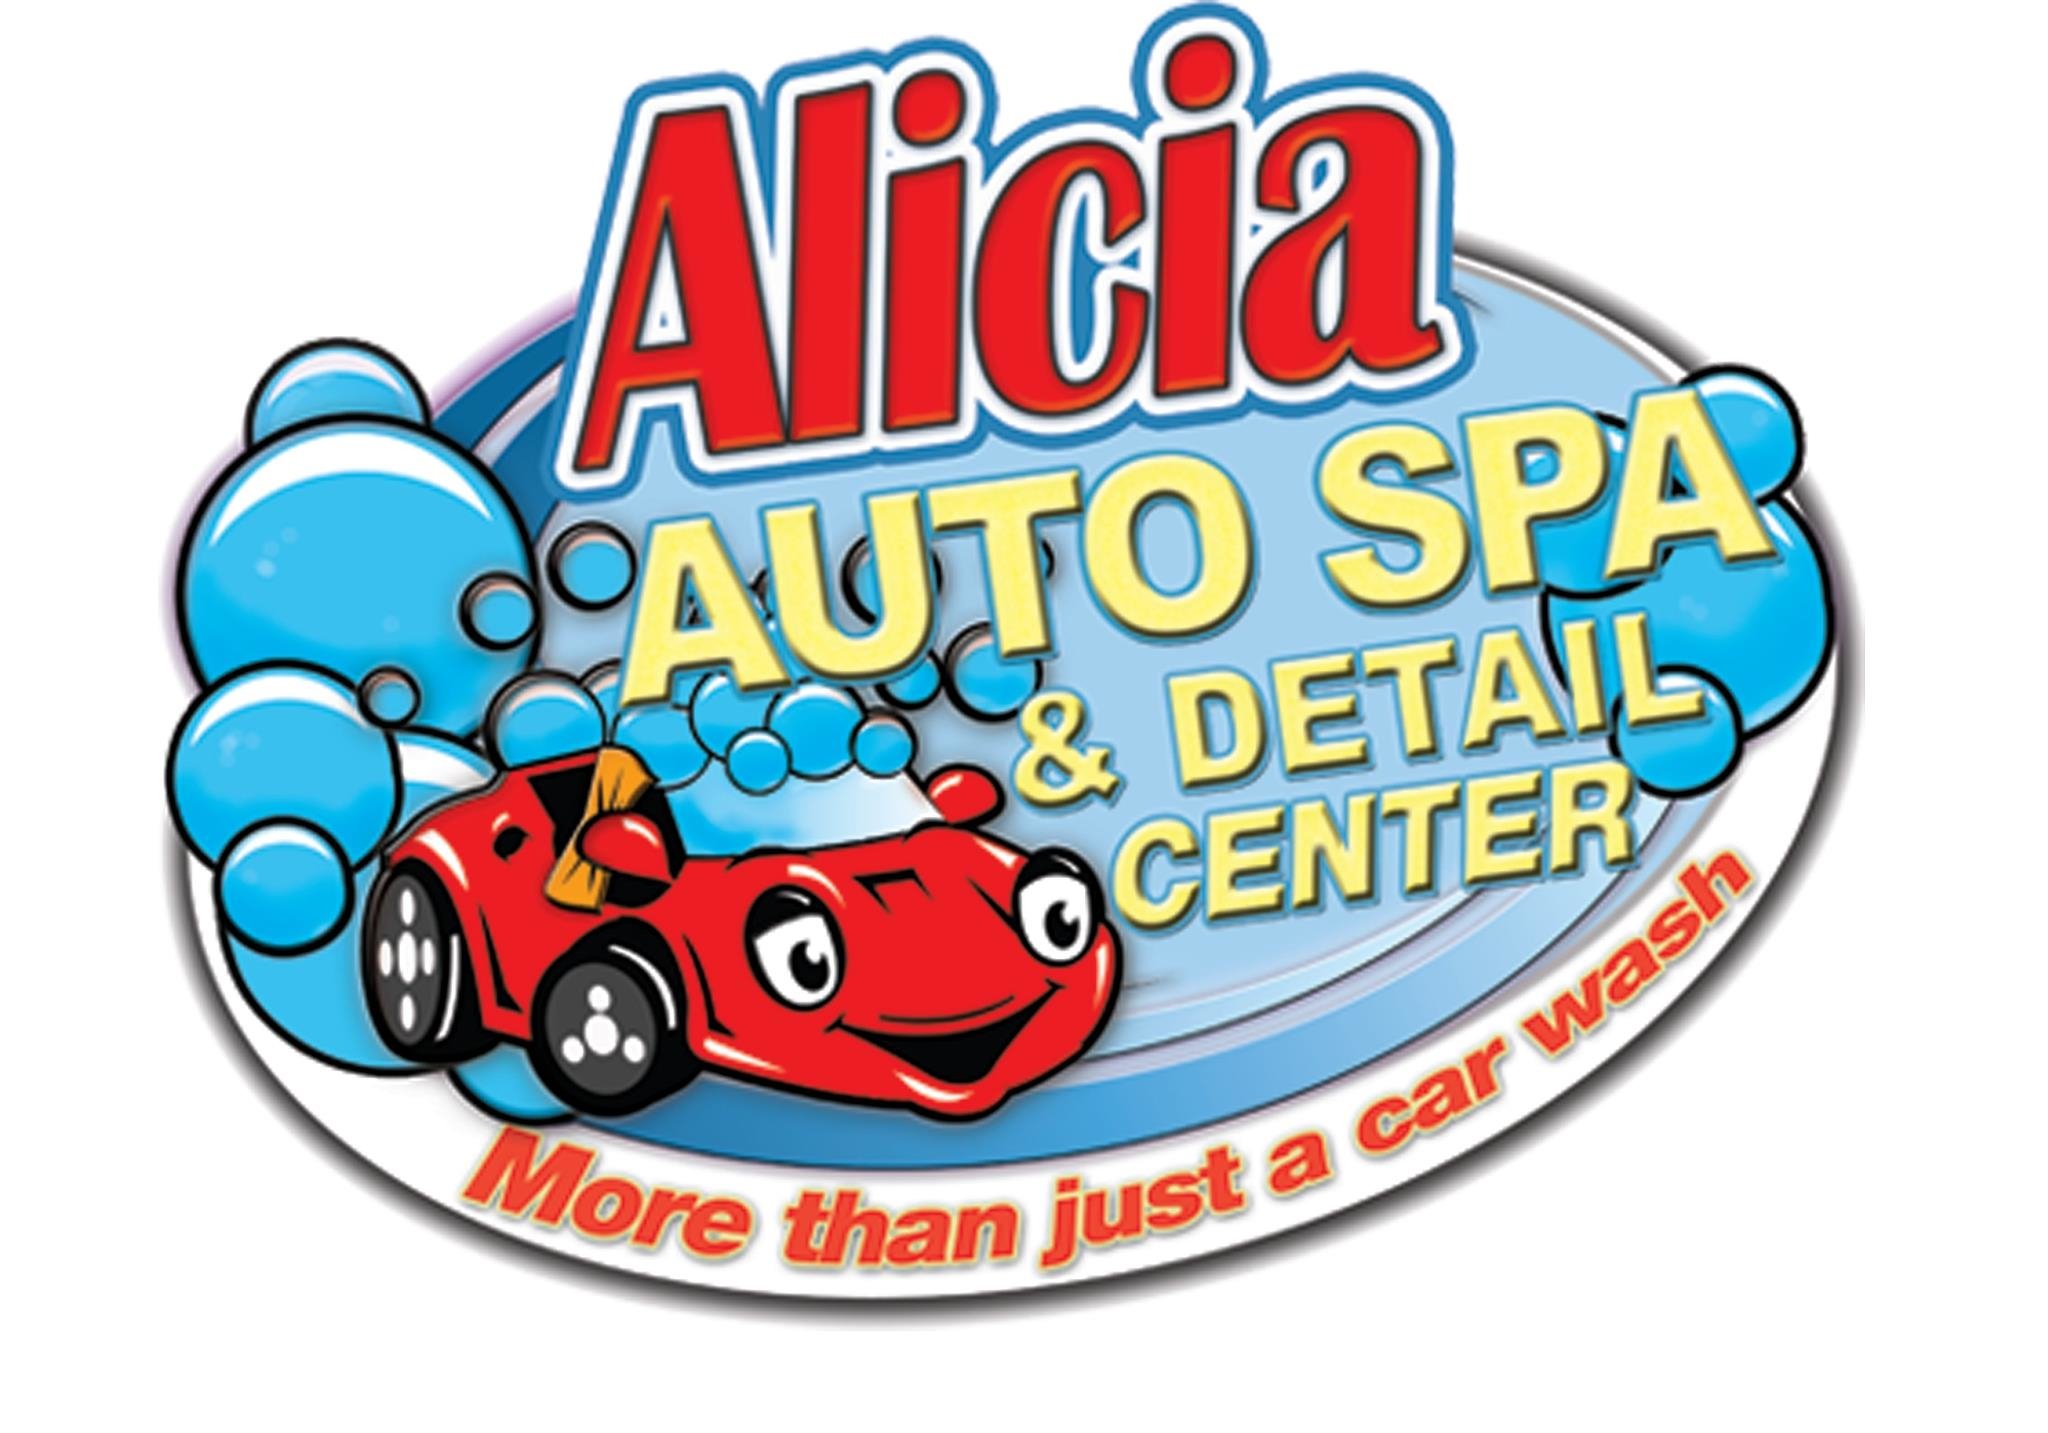 Alicia Auto Spa & Detail Center